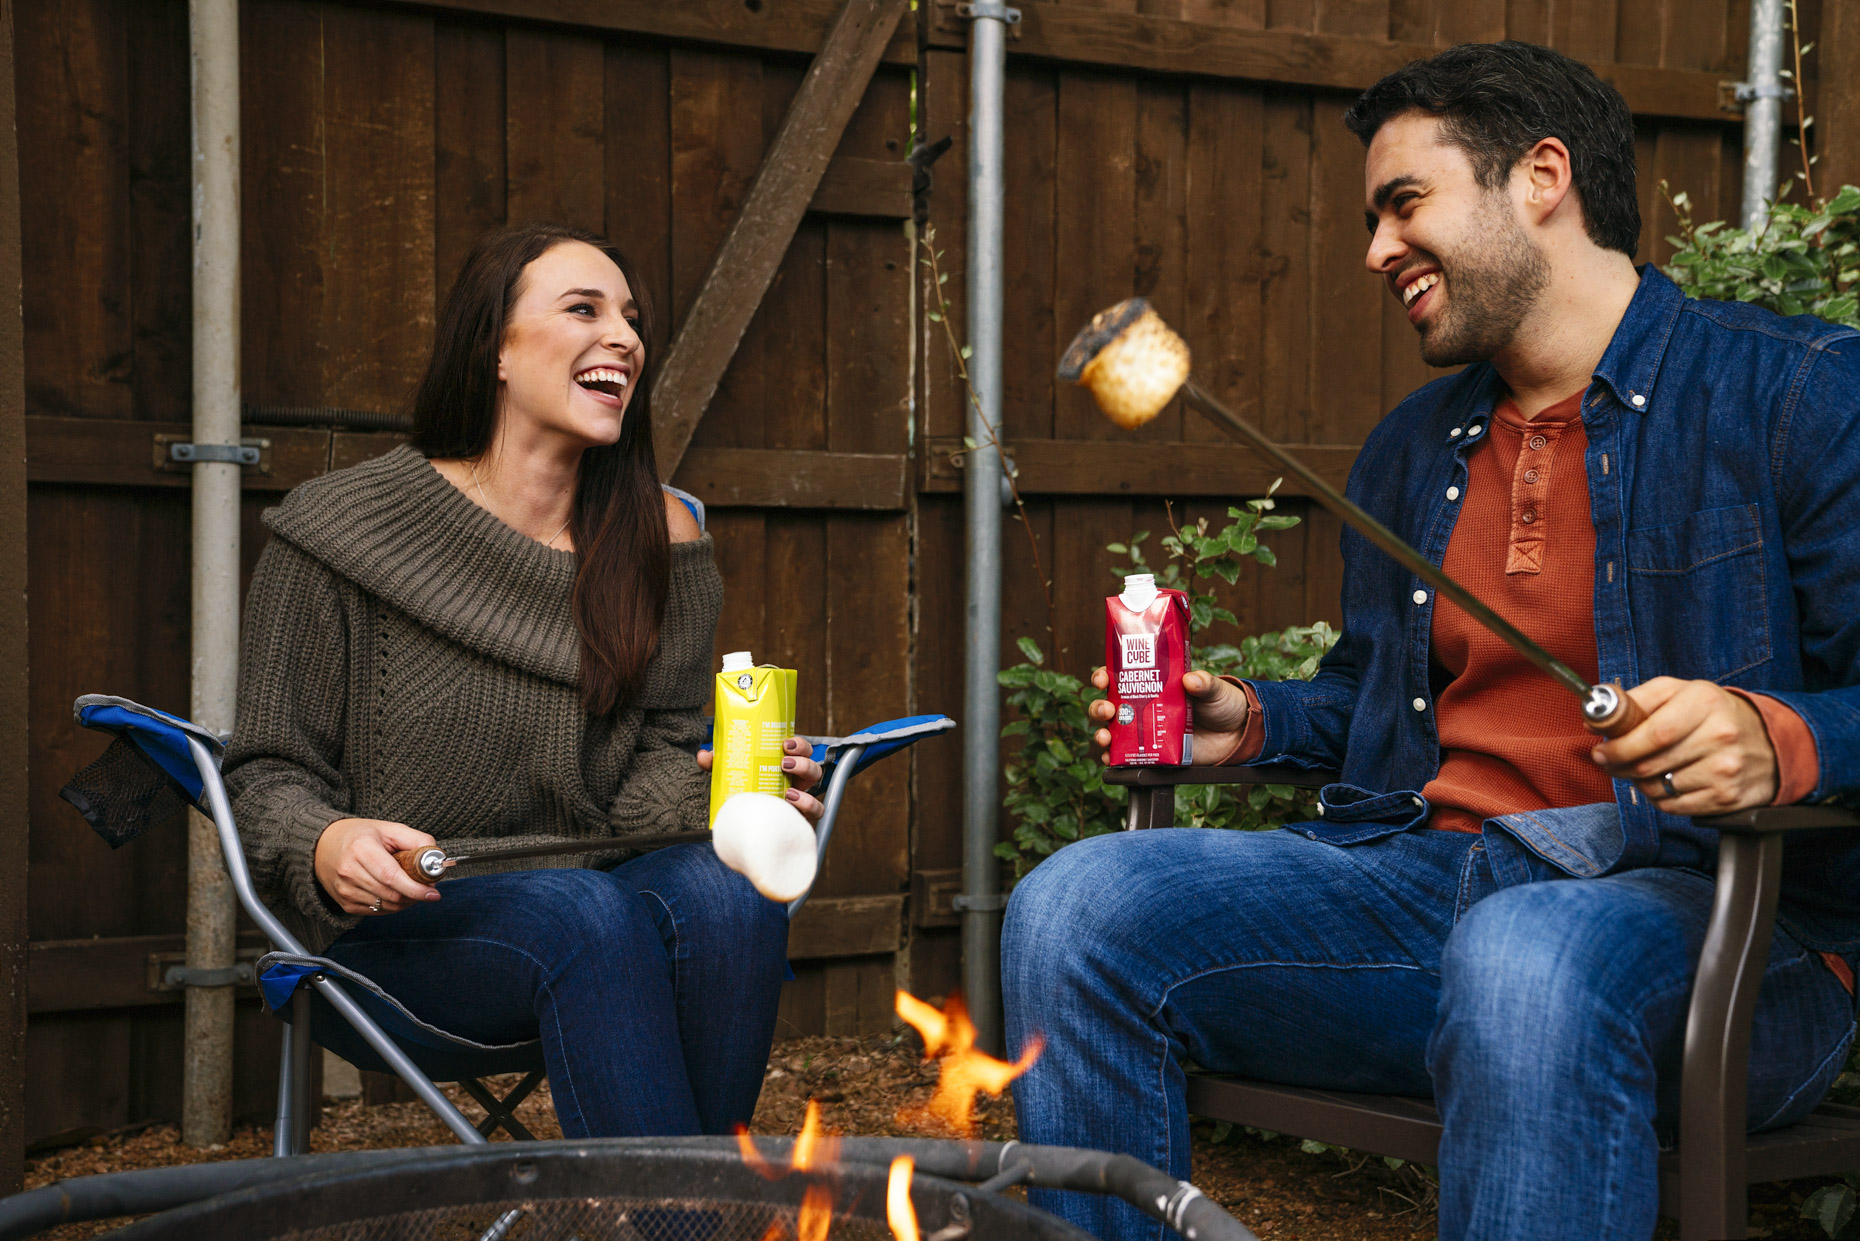 Man and woman roasting marshmallows over fire drinking boxed wine and laughing in back yard